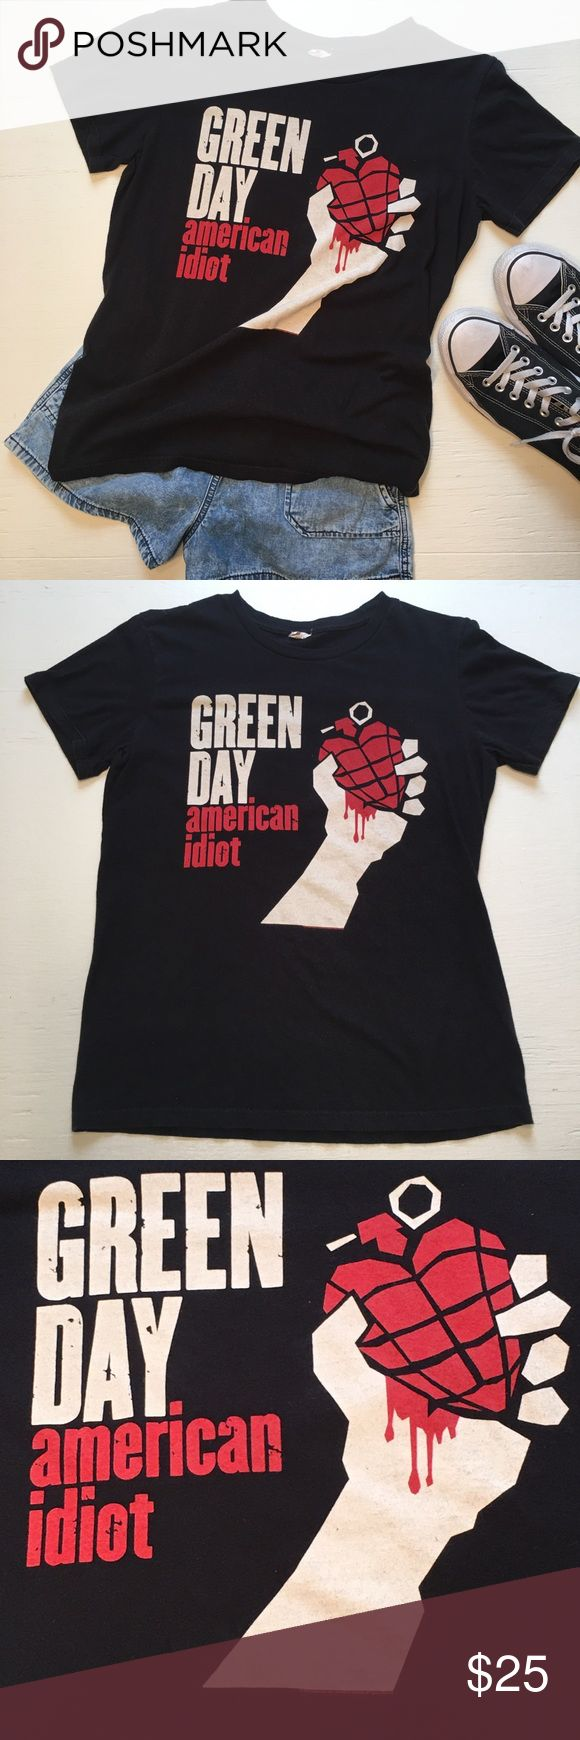 Green Day American Idiot Album Cover T-shirt The band Green Day American Idiot Album Cover graphics tee. Perfect for that #1 fan!!! Adult size XS.   *No trades or try on's. *Smoke free home. *Only the shirt is for sale, additional clothing & props are not included with purchase.  Please feel free to ask me any ?s & be sure to bundle all your likes for an AH-mazing deal!!! F132 Green Day Tops Tees - Short Sleeve